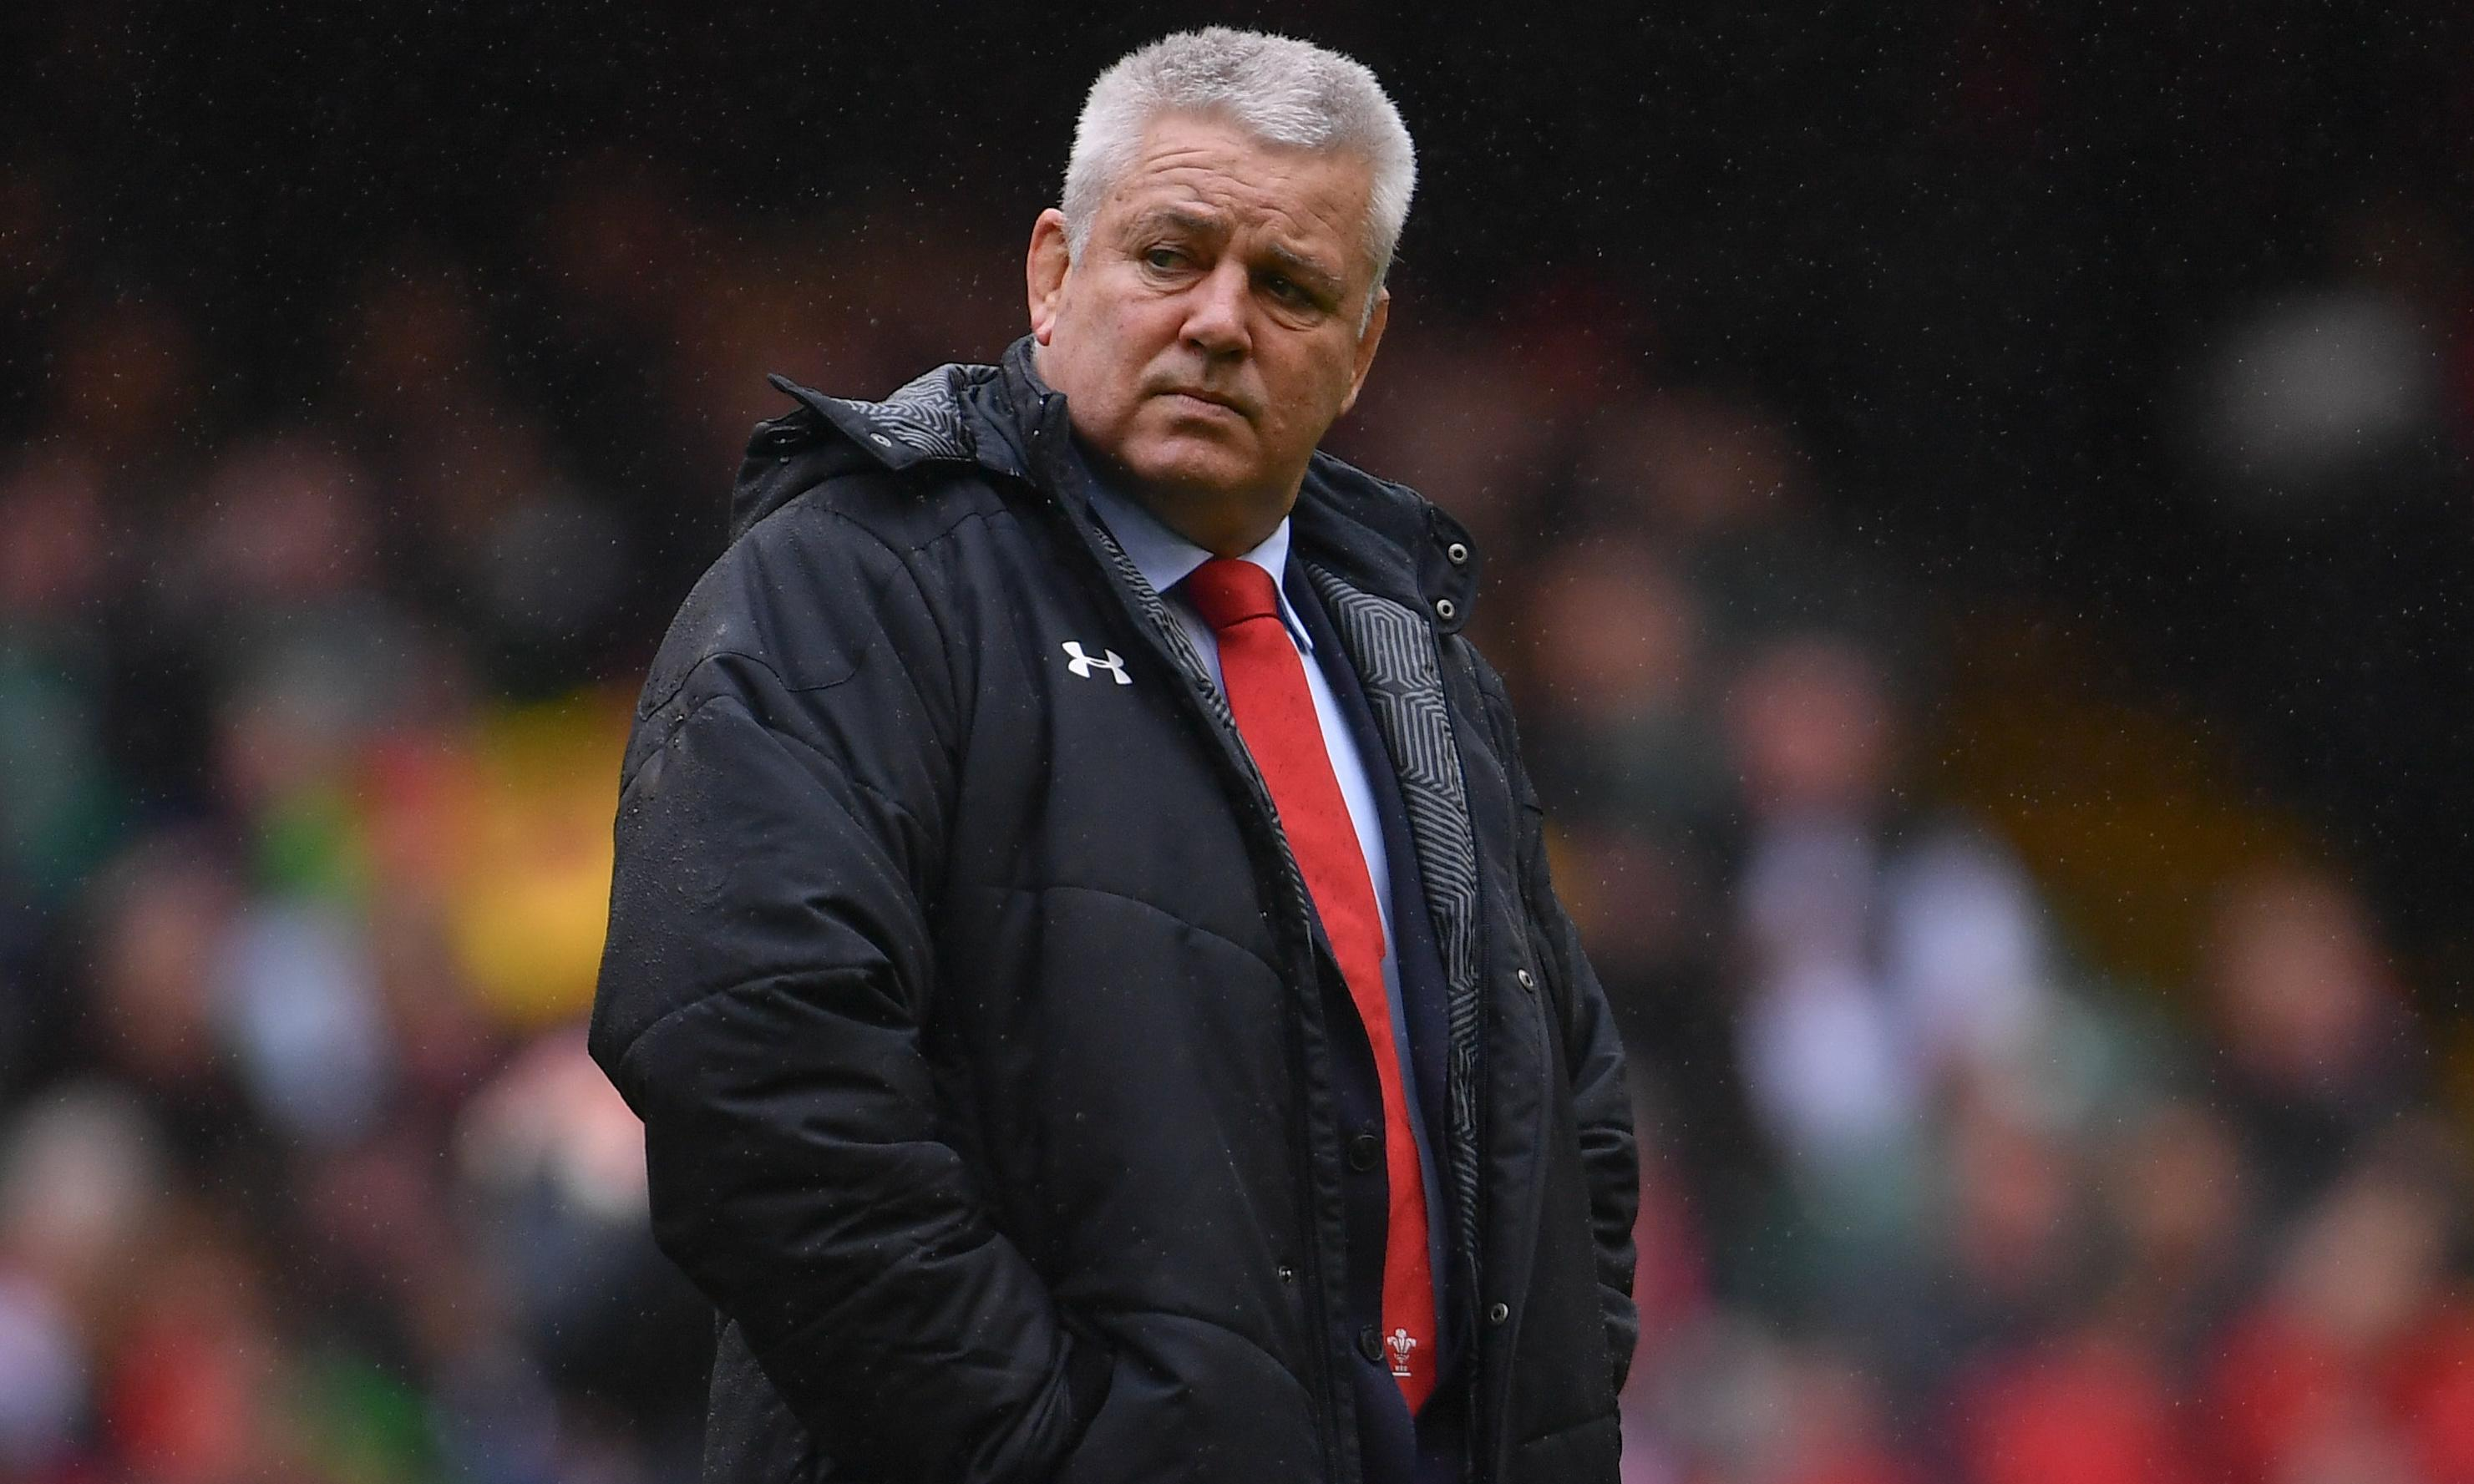 Warren Gatland's first match after leaving Wales will be against Wales